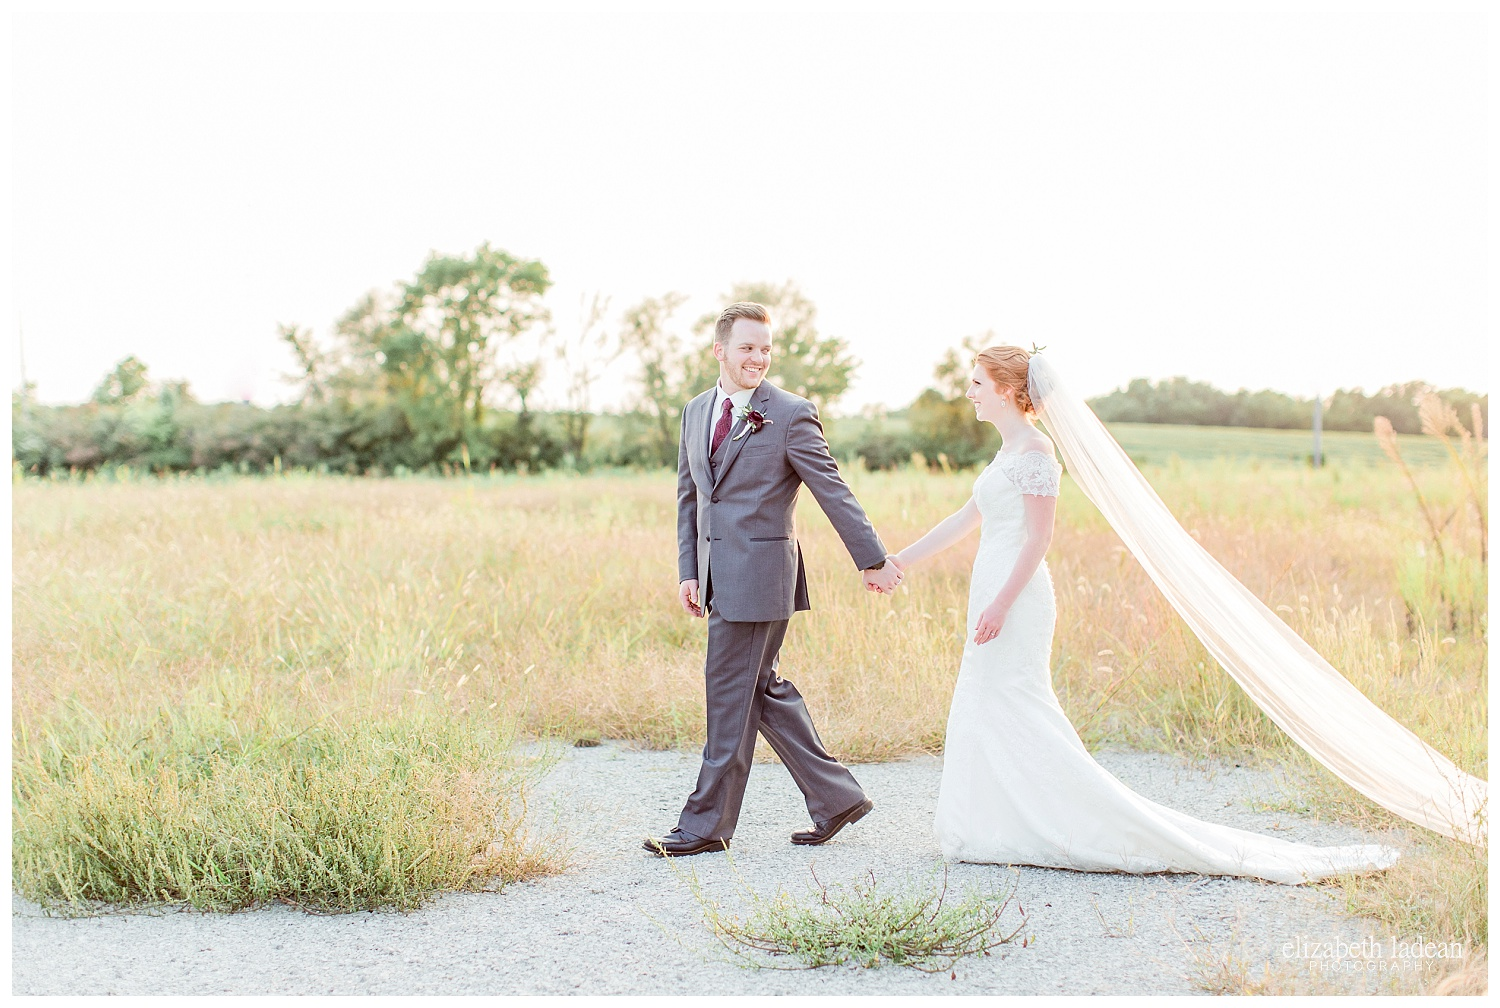 Burgundy-and-Gold-Wedding-Kansas-City-The-Legacy-at-Green-Hills-M+T0902-Elizabeth-Ladean-Photography-photo-_2315.jpg